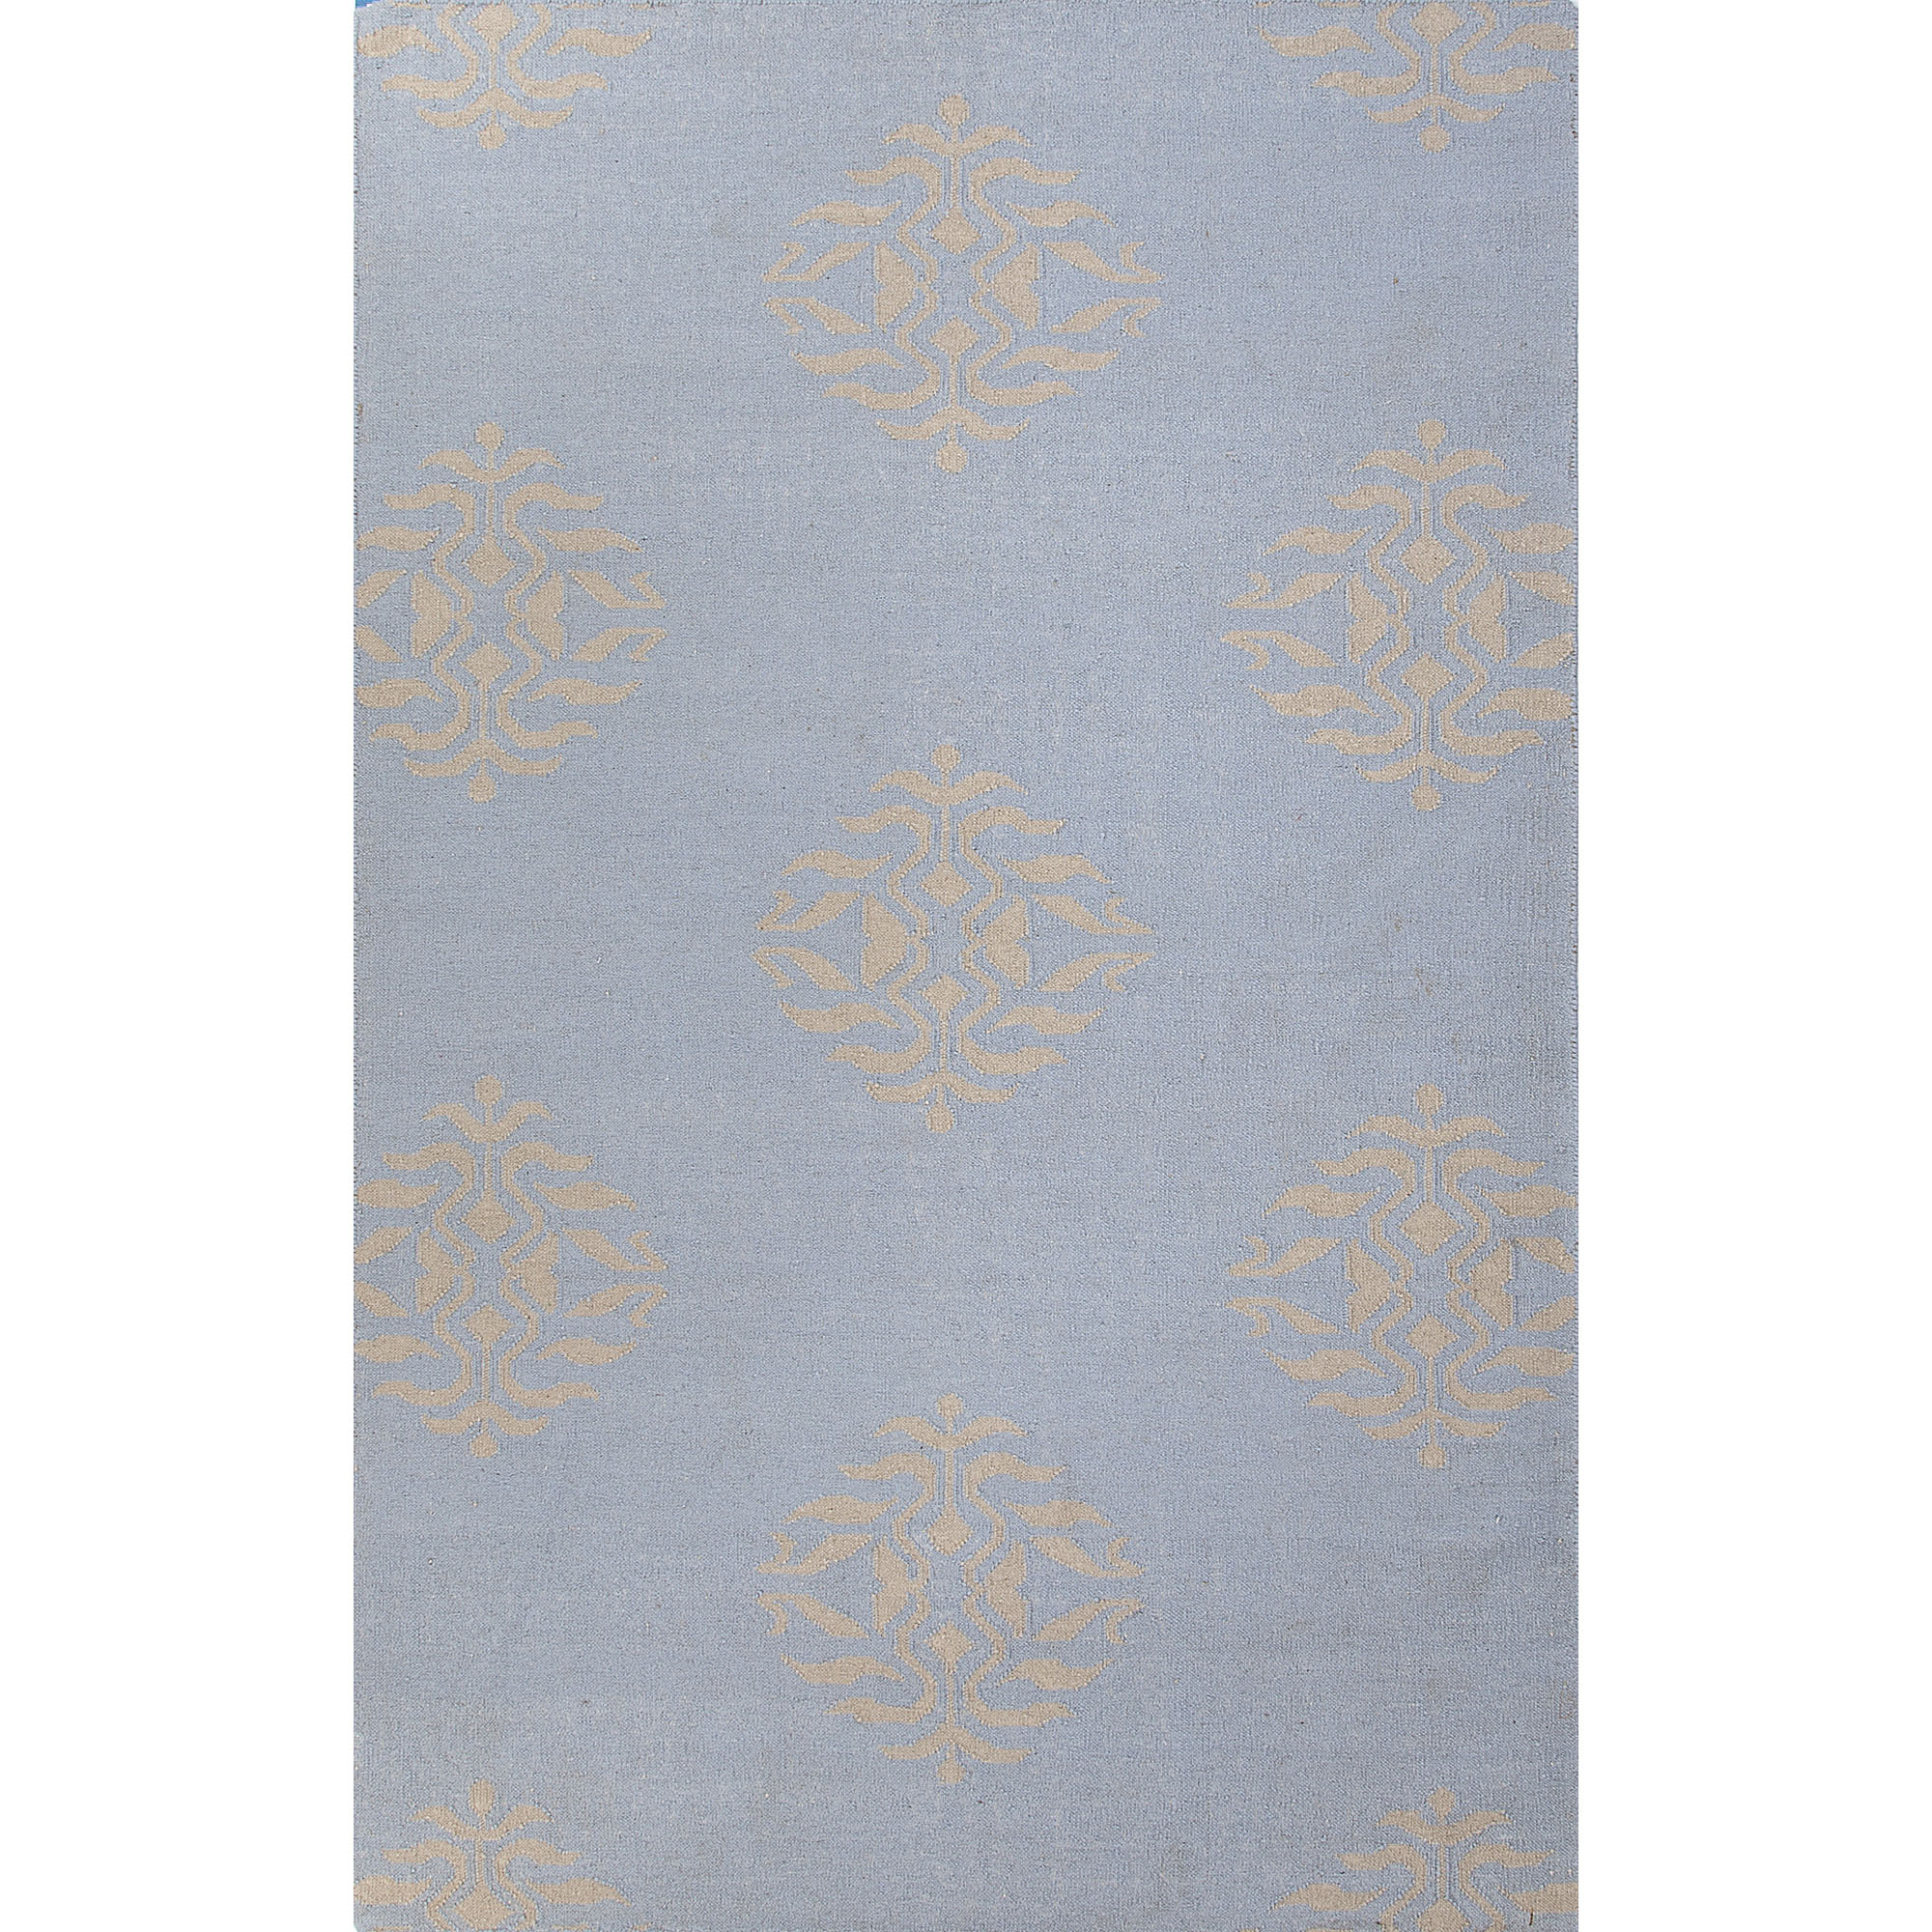 Maroc 9 x 12 Rug by JAIPUR Rugs at Malouf Furniture Co.